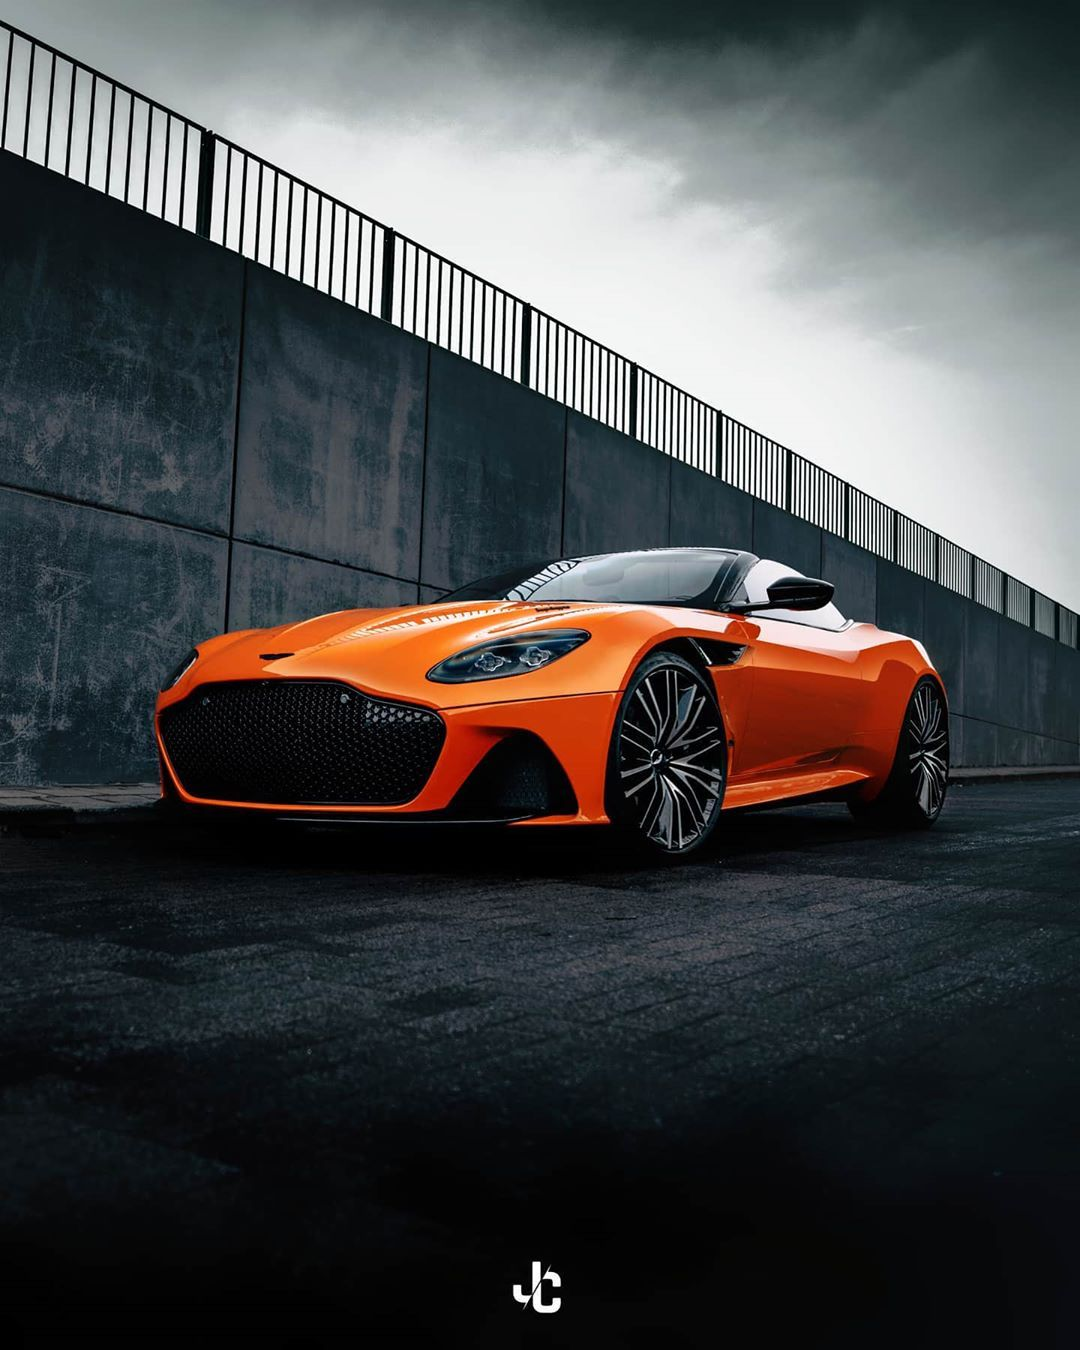 847 Likes 62 Comments Jules Capdeville Photography Julescapdeville On Instagram The Names Martin Aston Martin Astonm Aston Martin Sports Car Aston